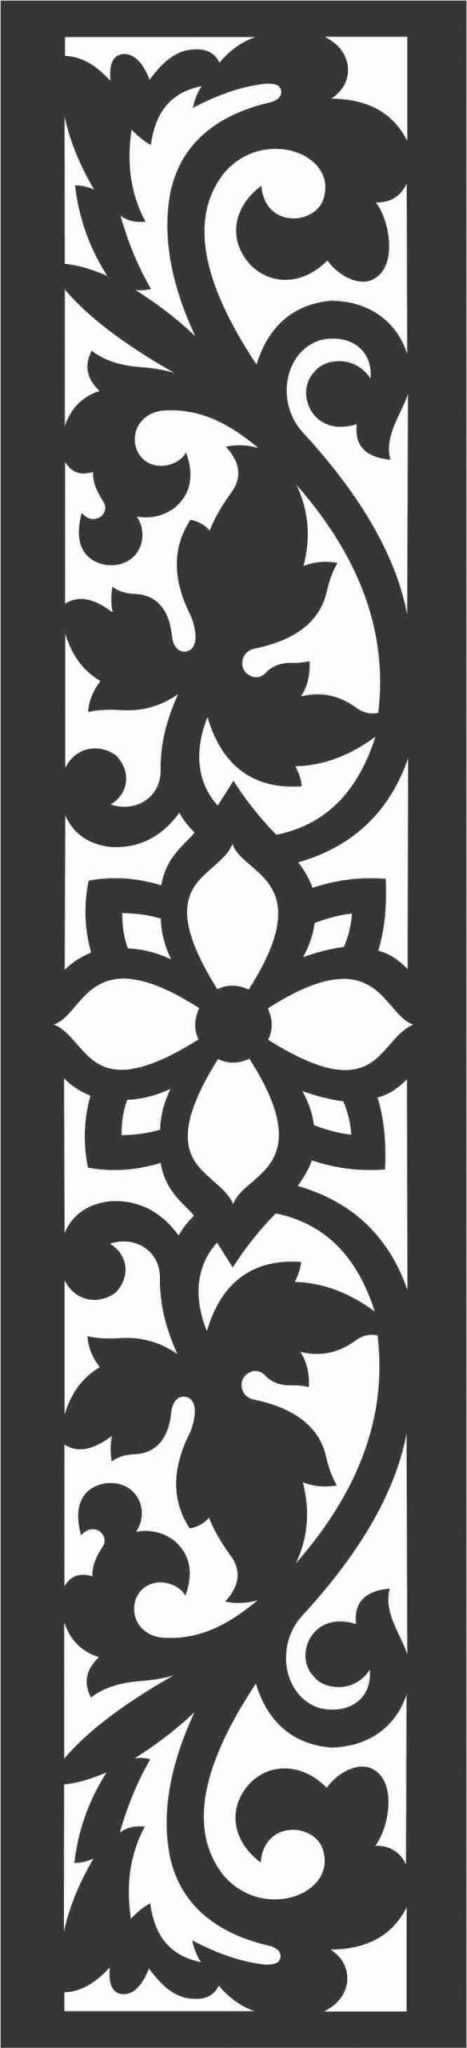 Floral Screen Patterns Design 81 Free DXF File